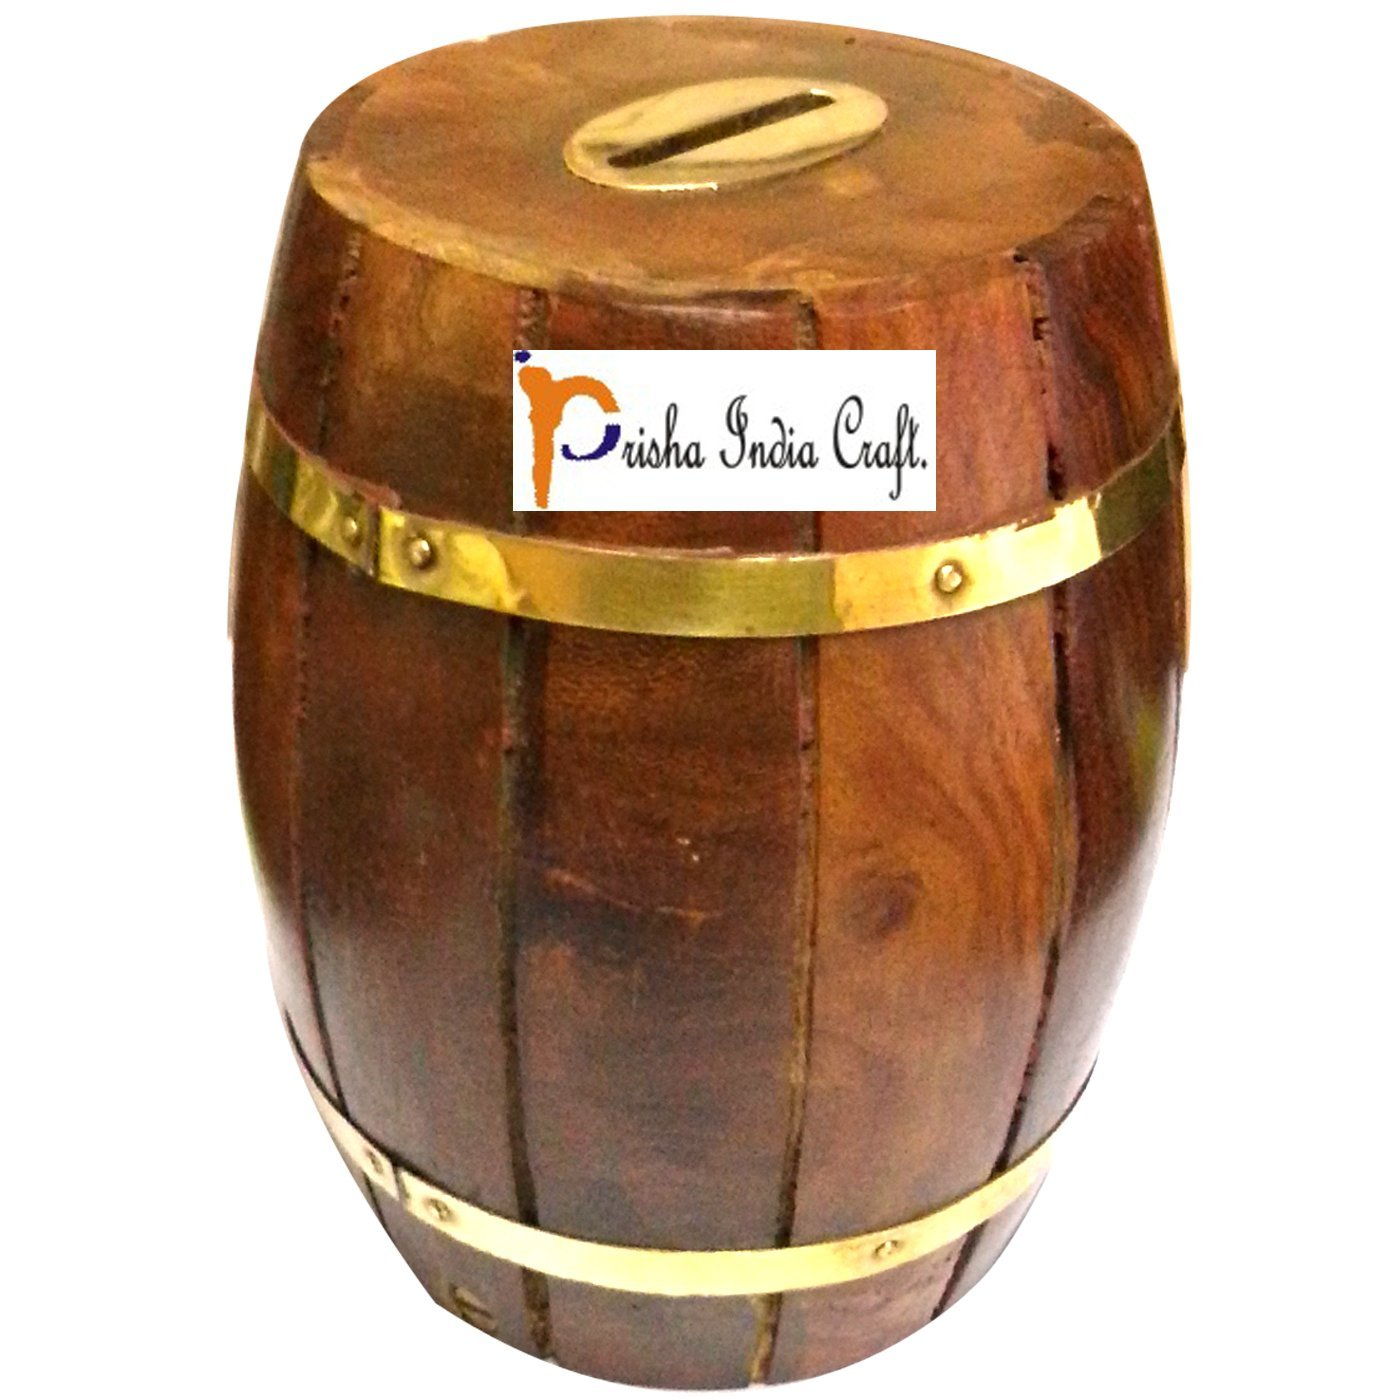 Prisha India Craft Handcrafted Barrel Shaped Wooden Money Box Safe Piggy Bank for Girls and Boys wooden money bank Coin Holder CHRISTMAS GIFT ITEM 3 X 3 X 4.8 Inch, Square Style